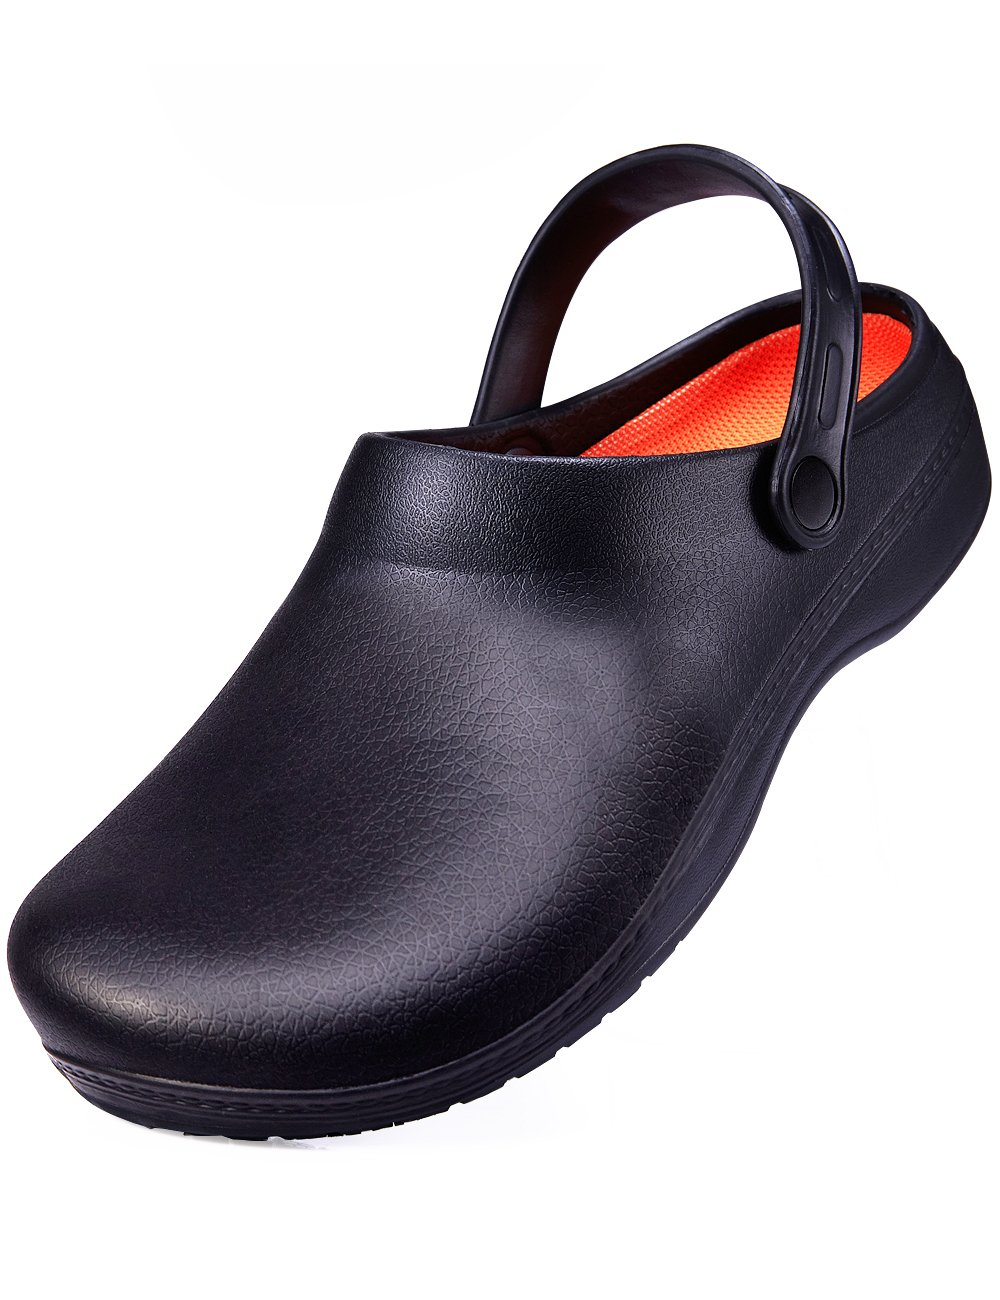 kitchen shoes womens photos of outdoor kitchens and bars cheap slip resistant find get quotations sensfoot chef clogs for non work men women